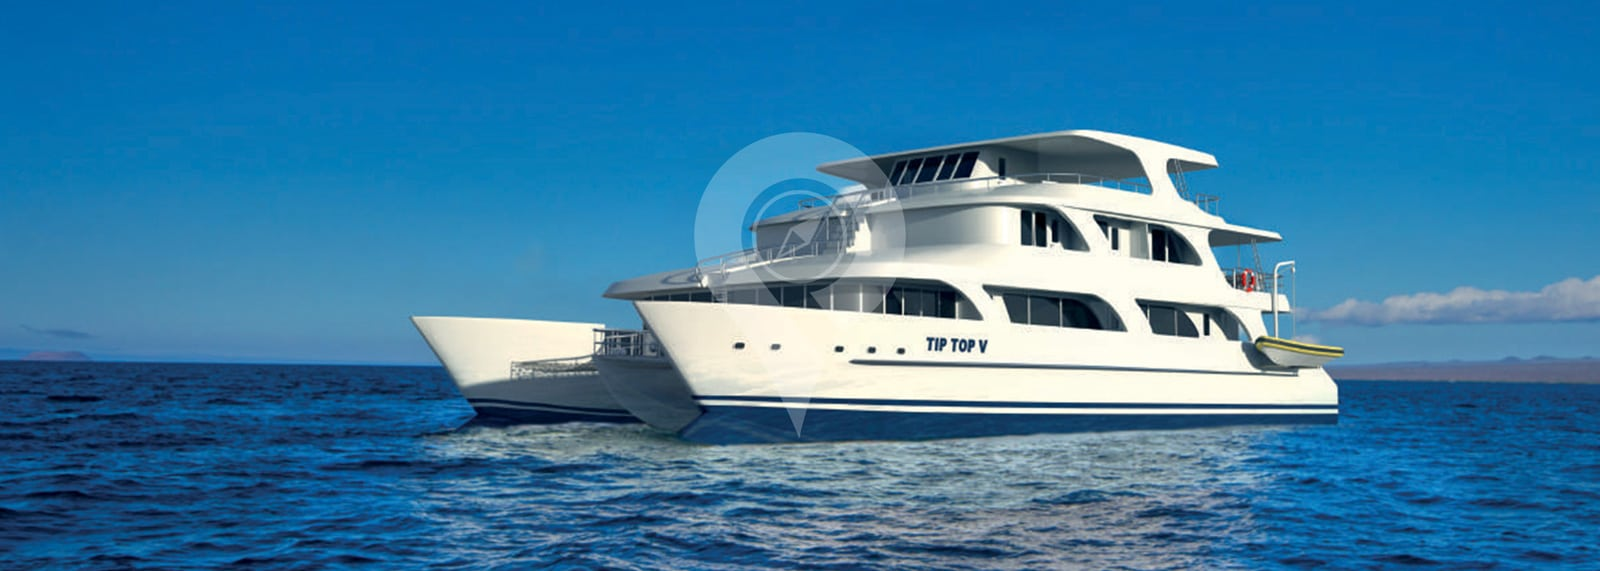 Tip Top 5 Galapagos Catamaran